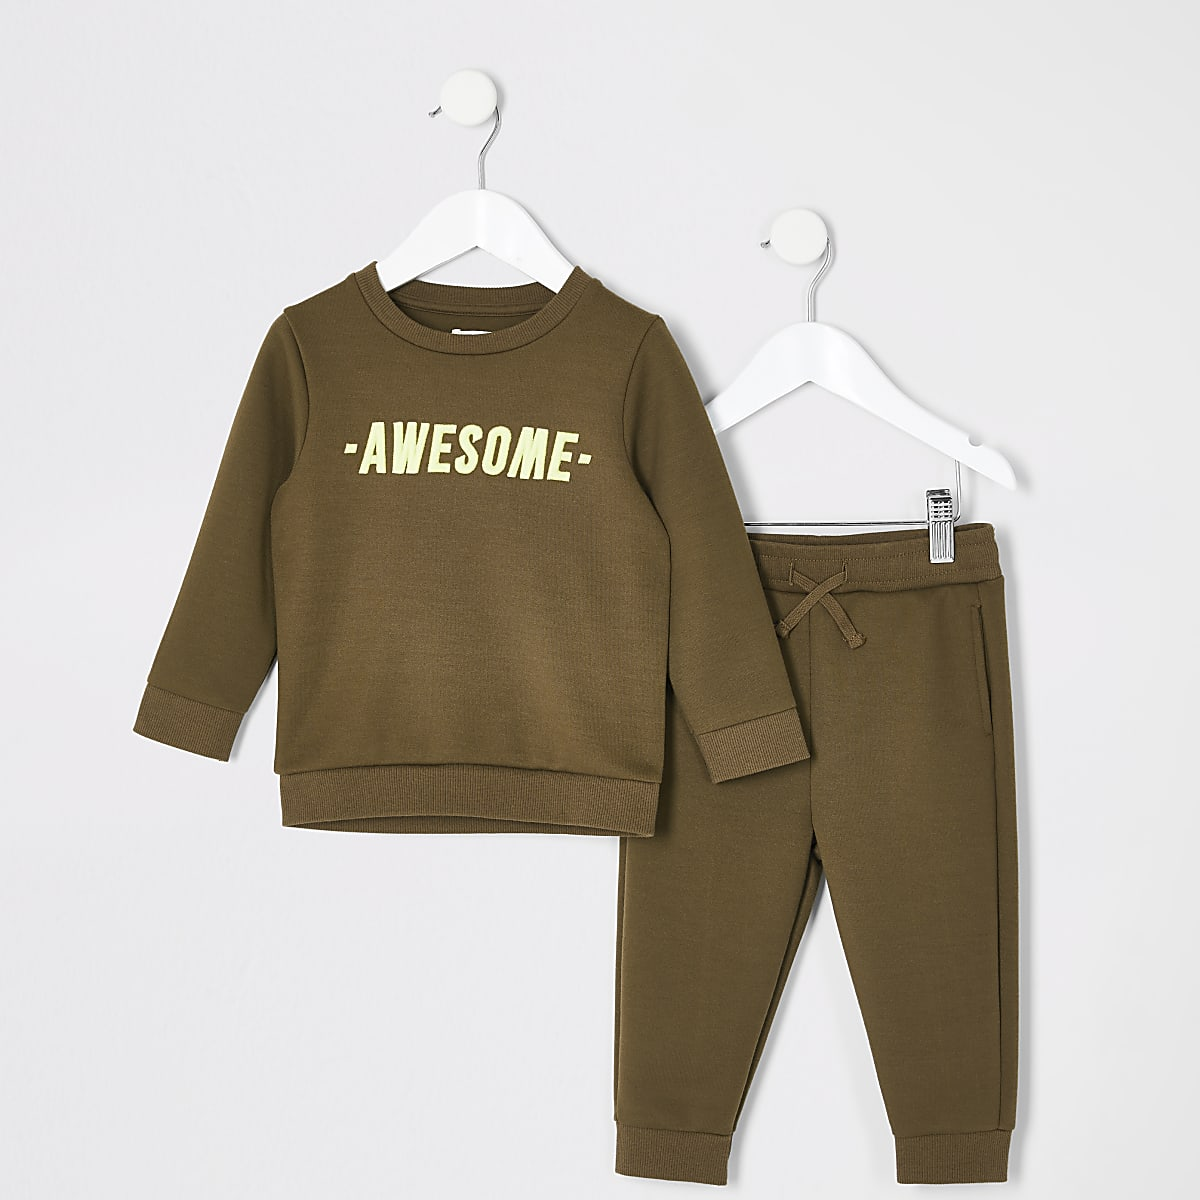 Mini boys khaki 'Awesome' sweatshirt outfit